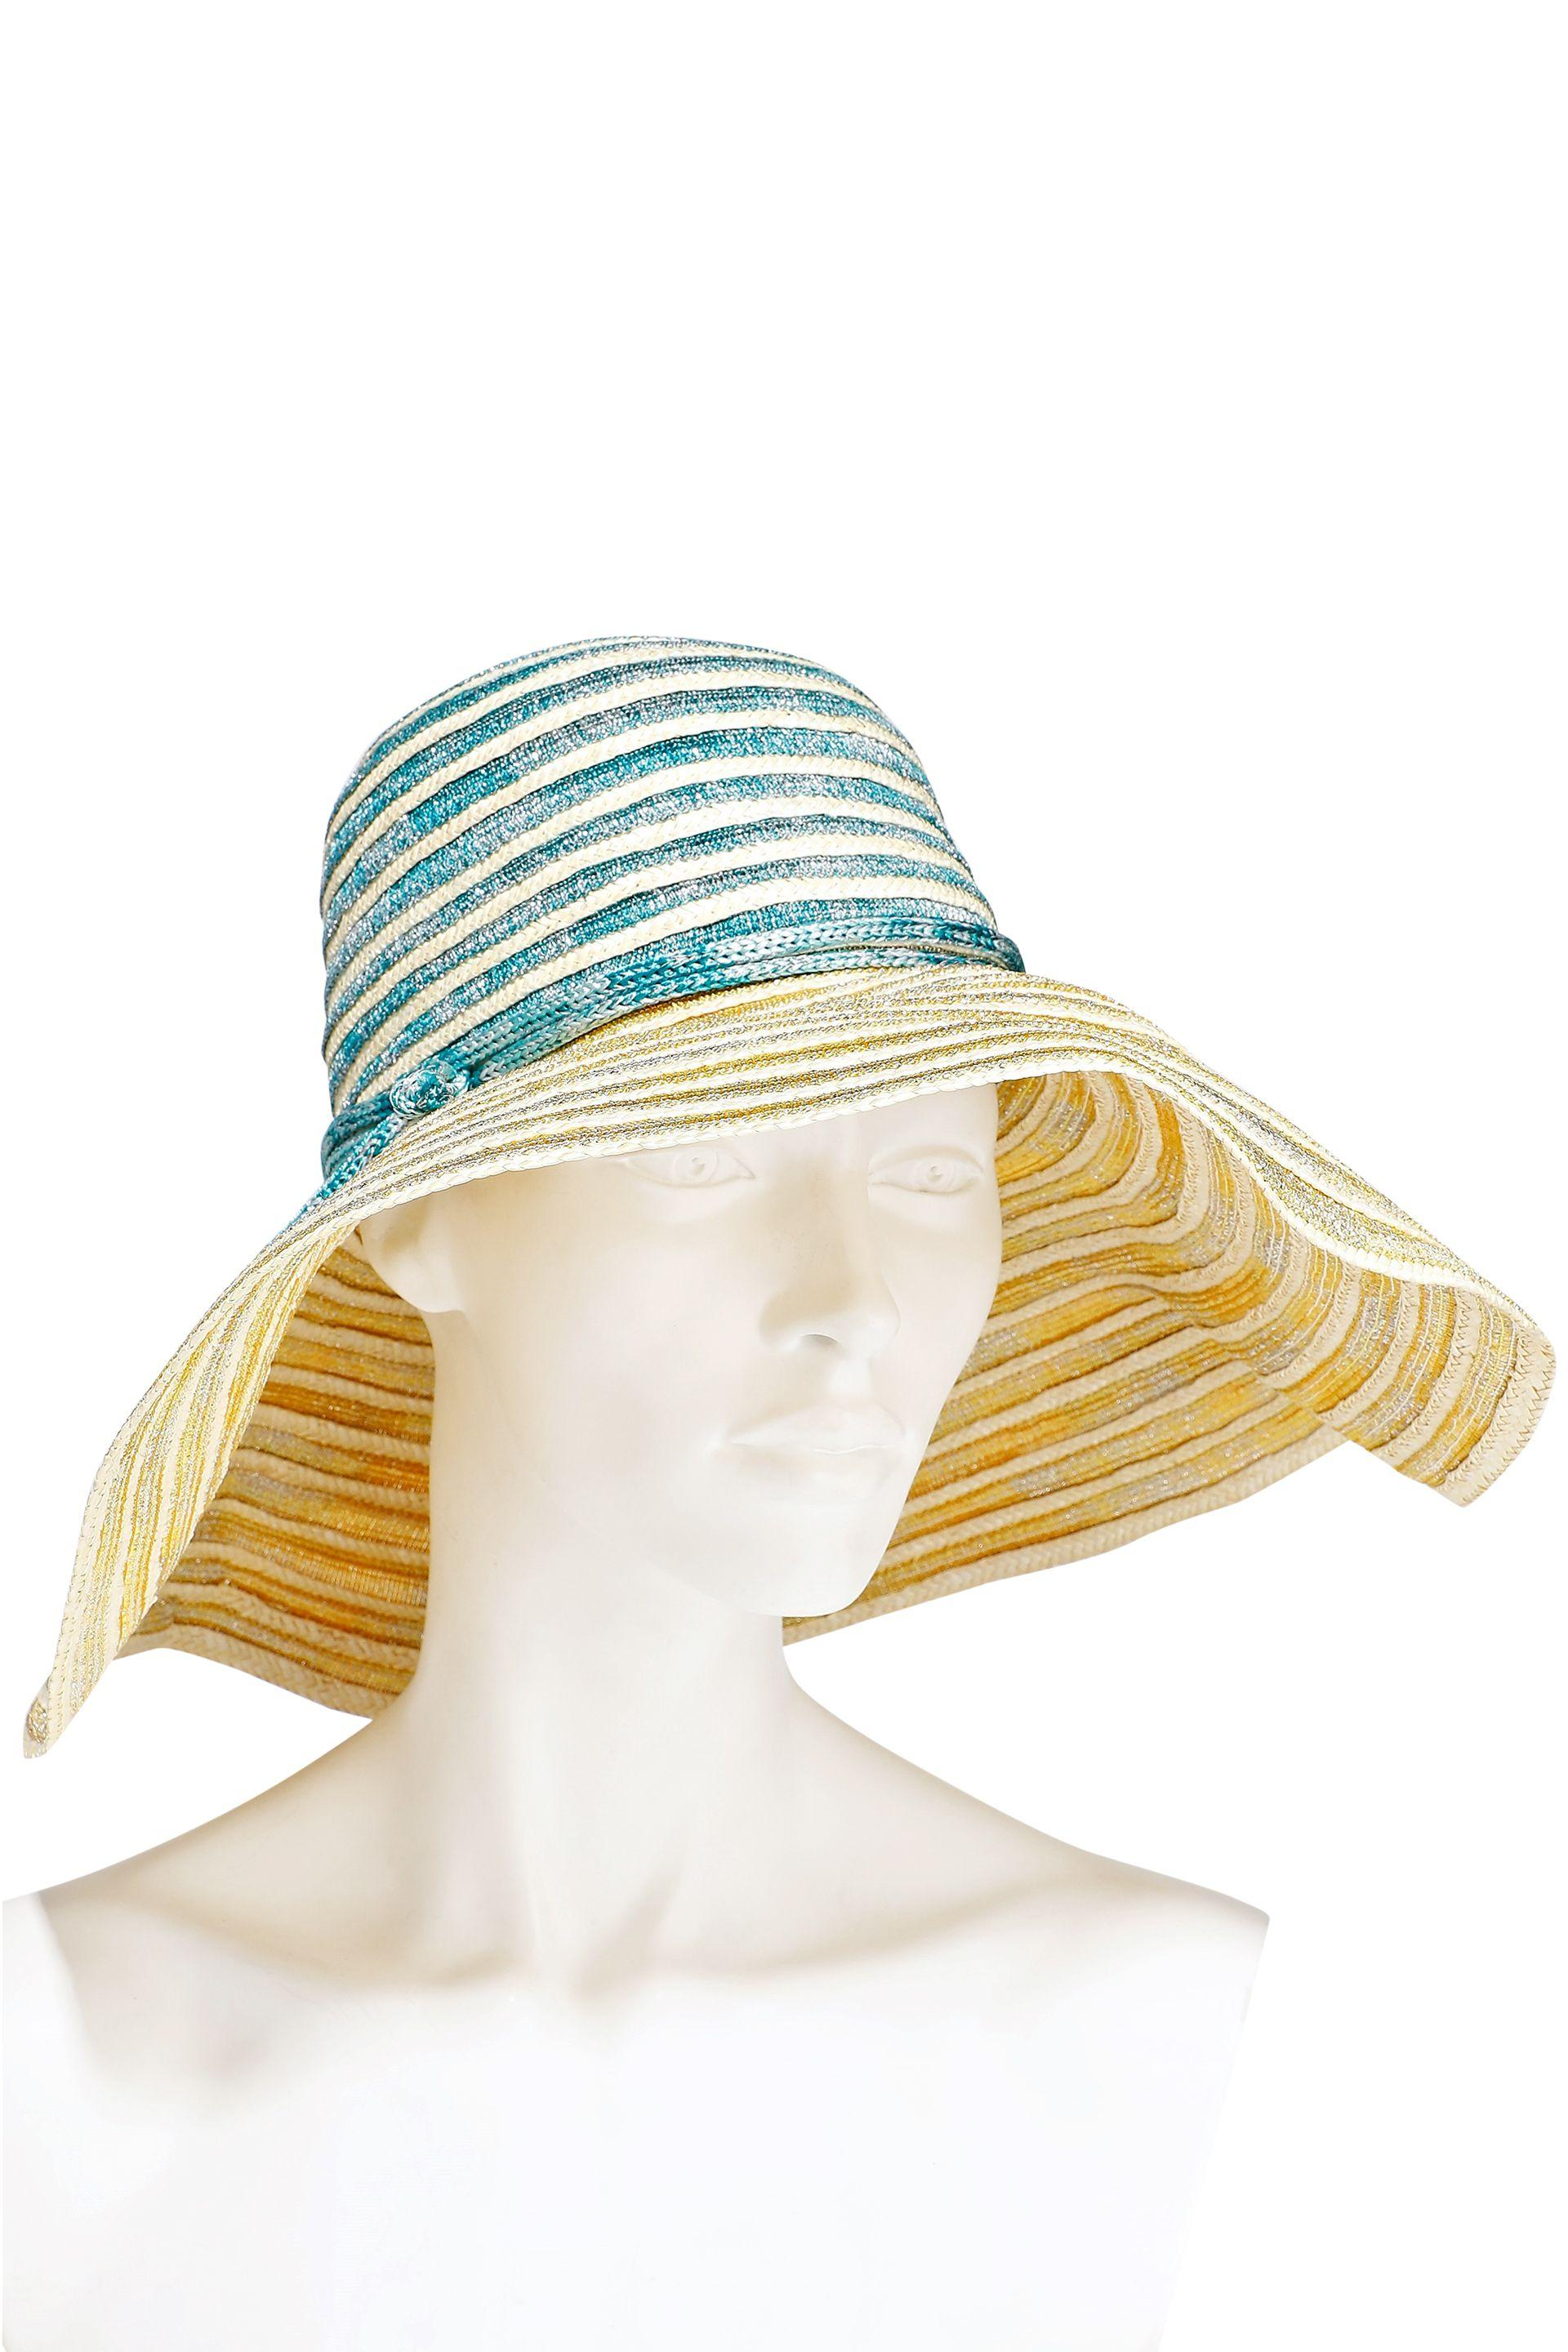 7c2975a9bd94dd Lyst - Missoni Woman Metallic Crochet-knit And Woven Straw Sunhat ...